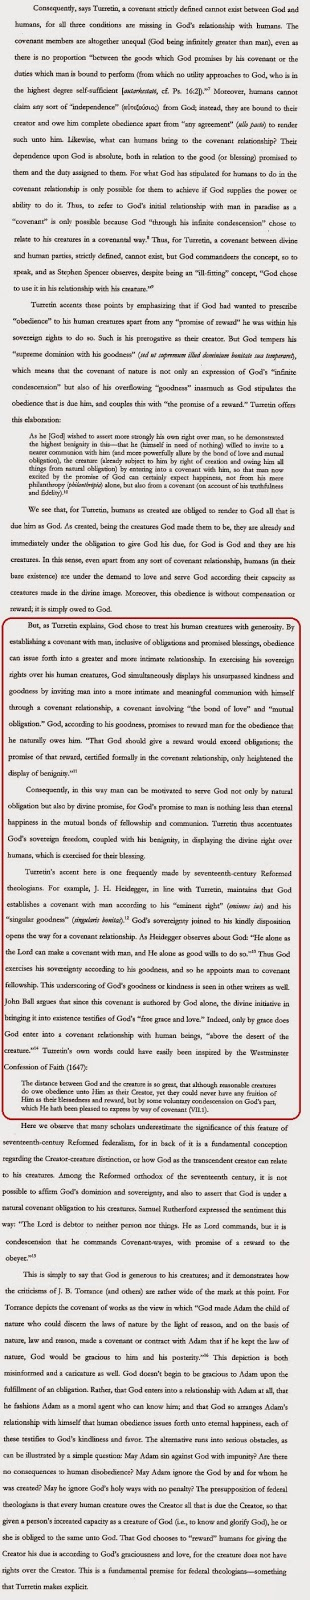 calvin theological seminary dissertations Thesis (th m)--calvin theological seminary the fall, redemption and consummation as a framework for understanding the law-gospel relationship in calvin (2004.